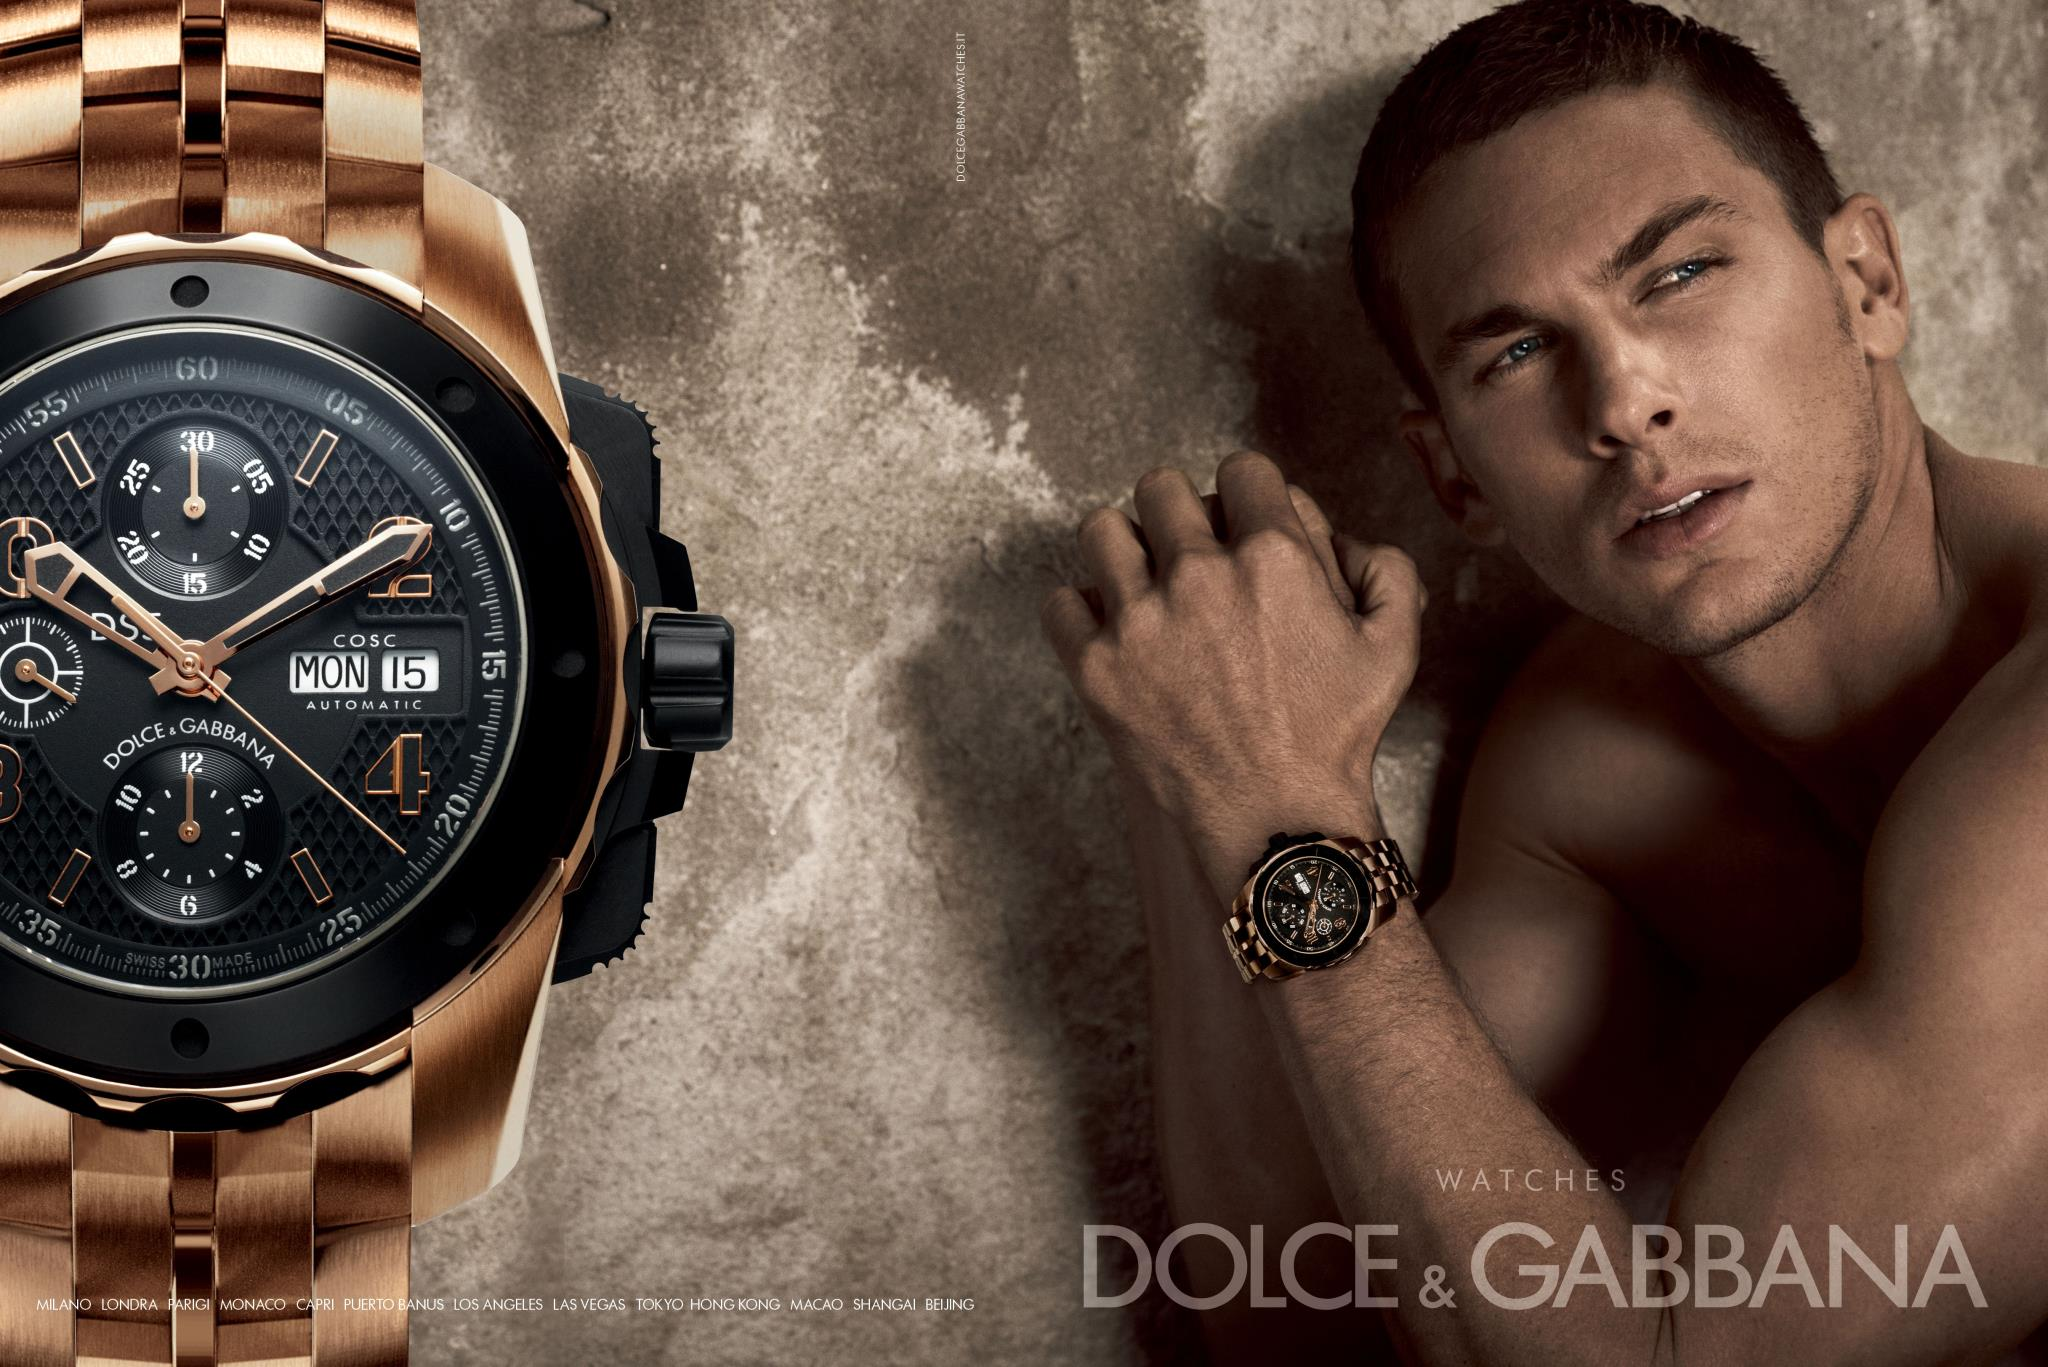 Dolce and Gabbana watch campaign 2012